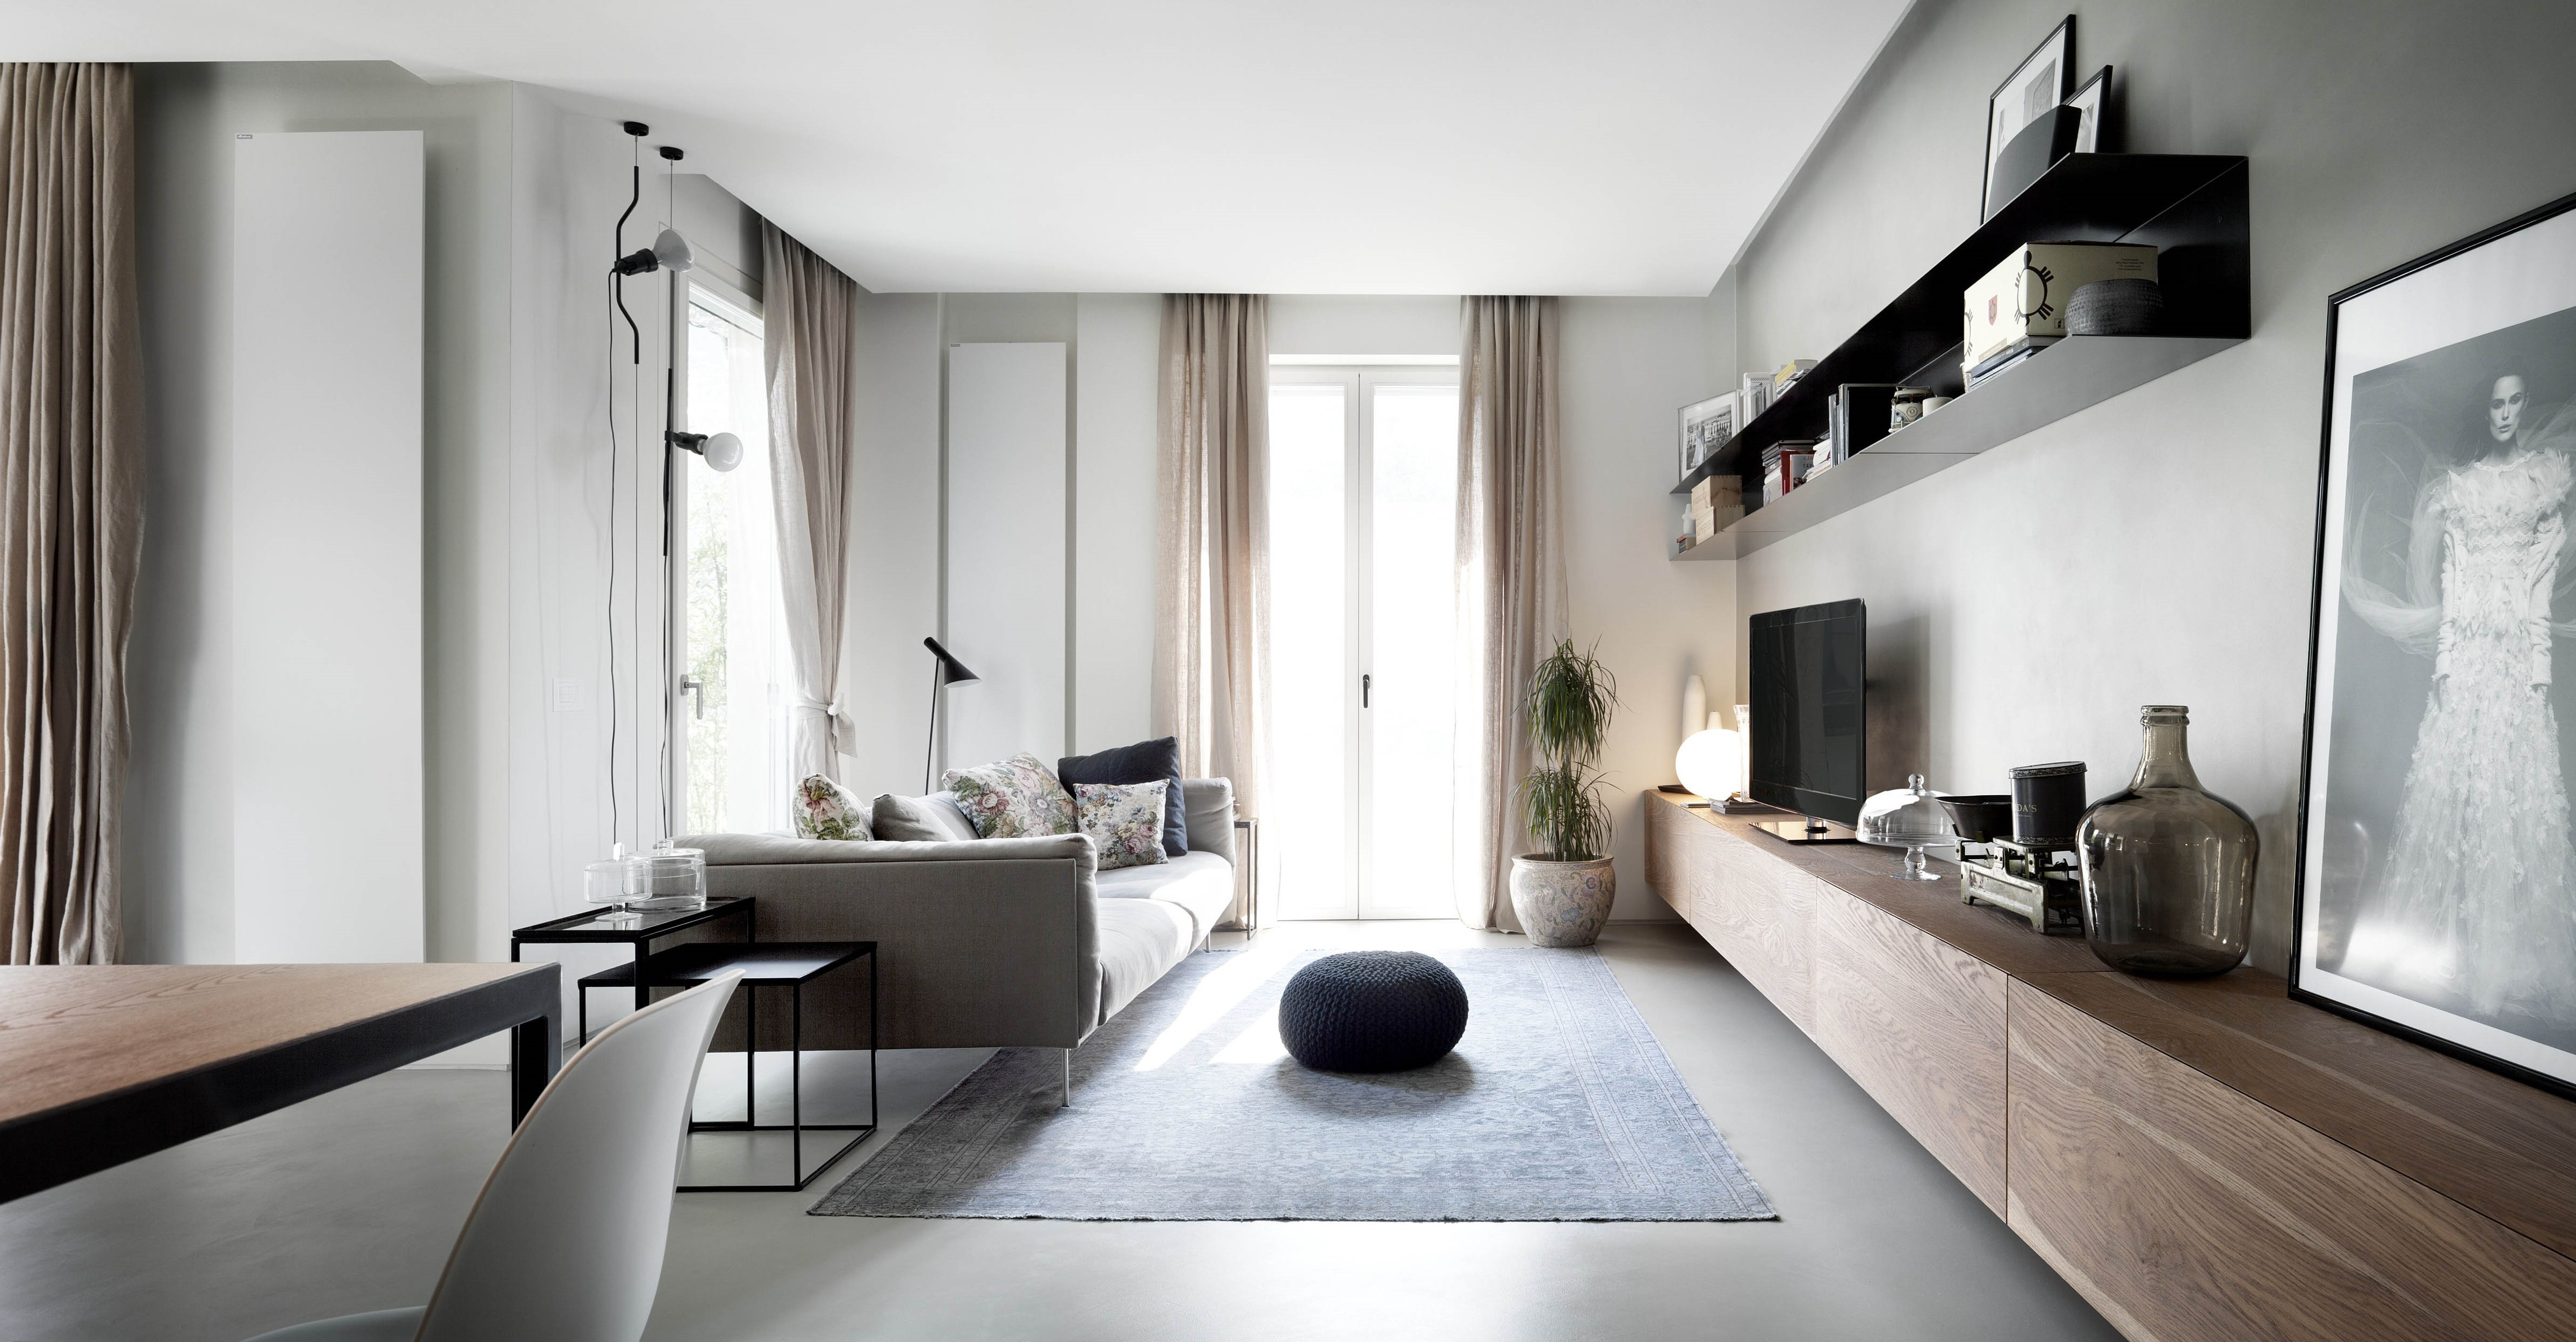 How To Find An Interior Decorator